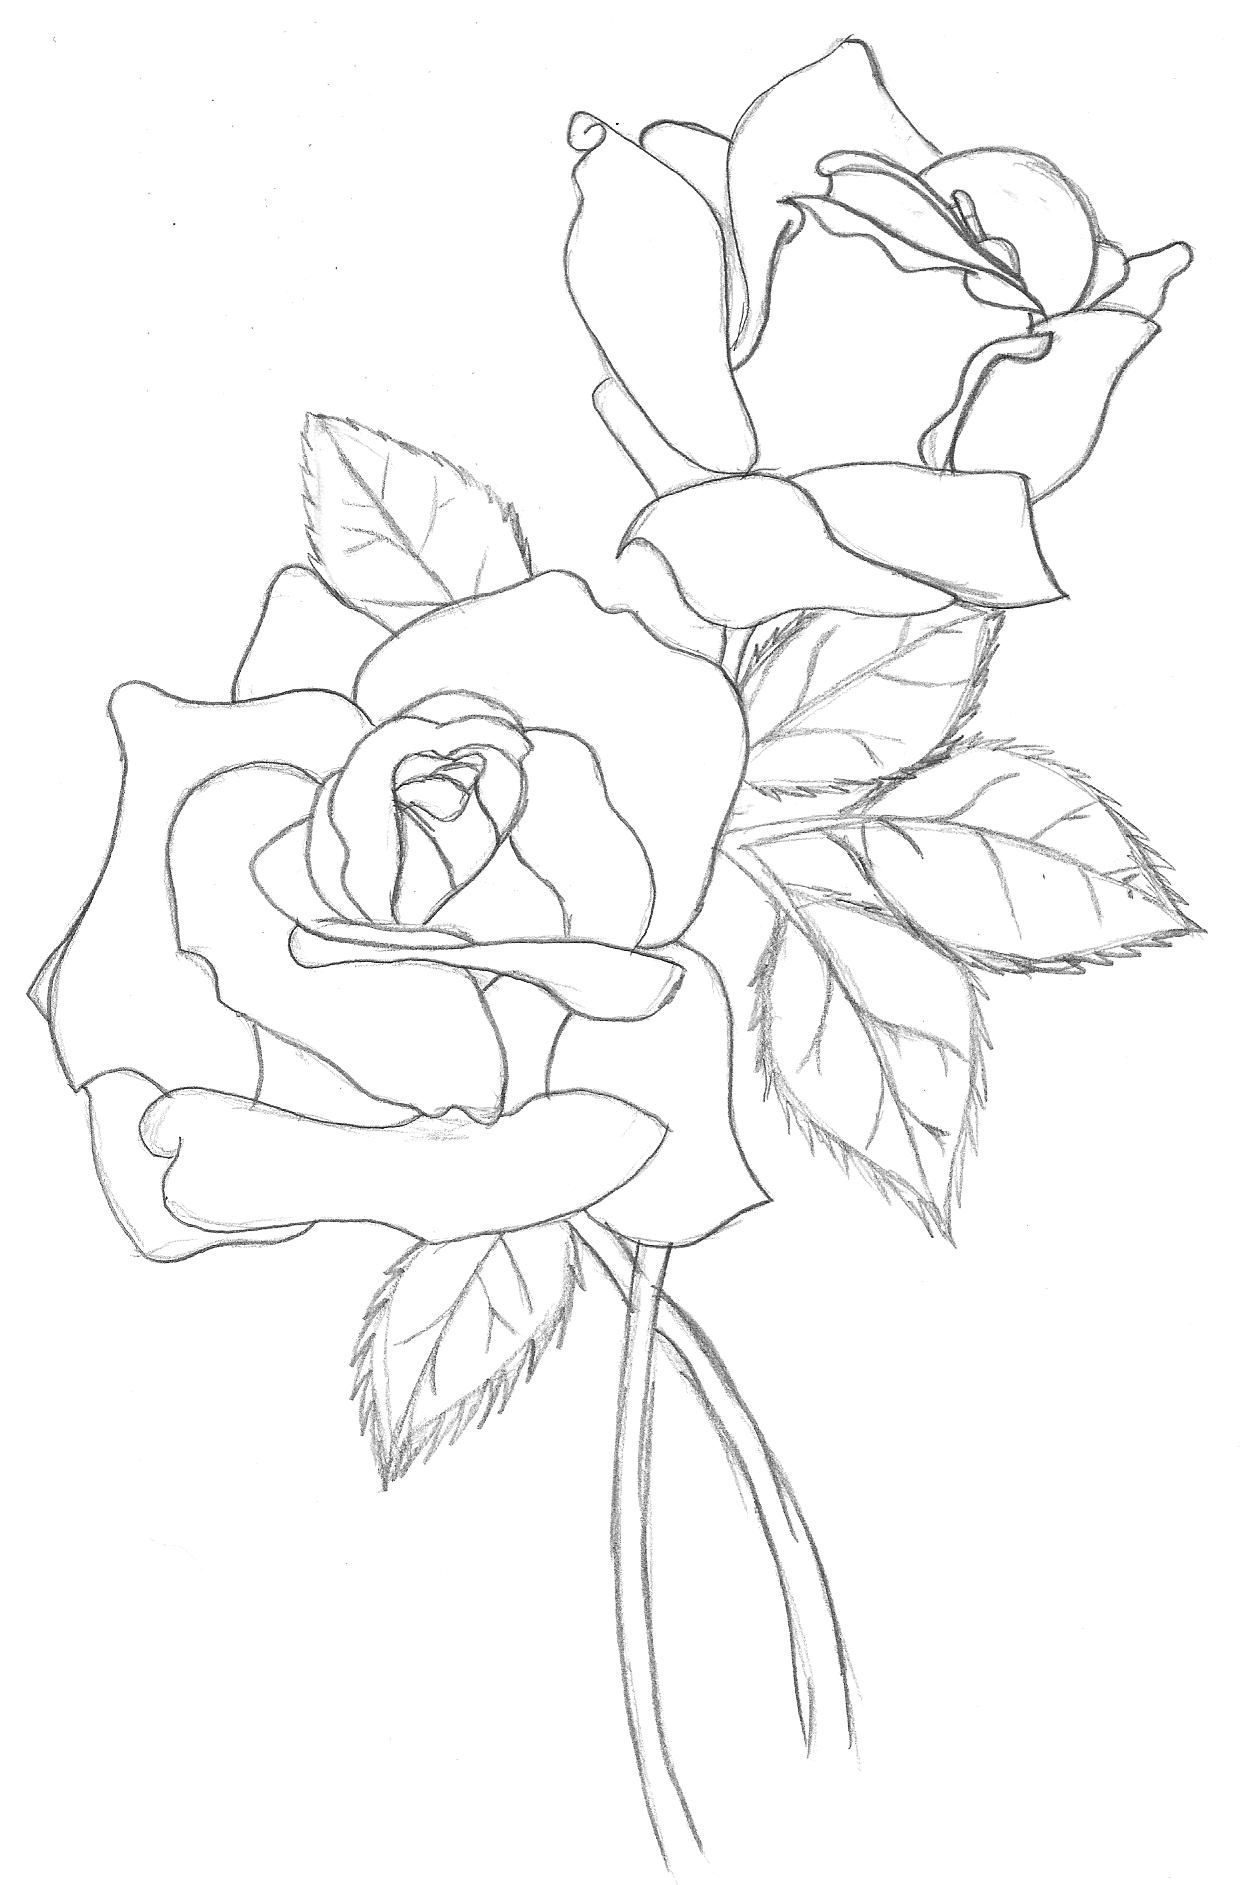 this is an outline of some flowers the lines are used to create